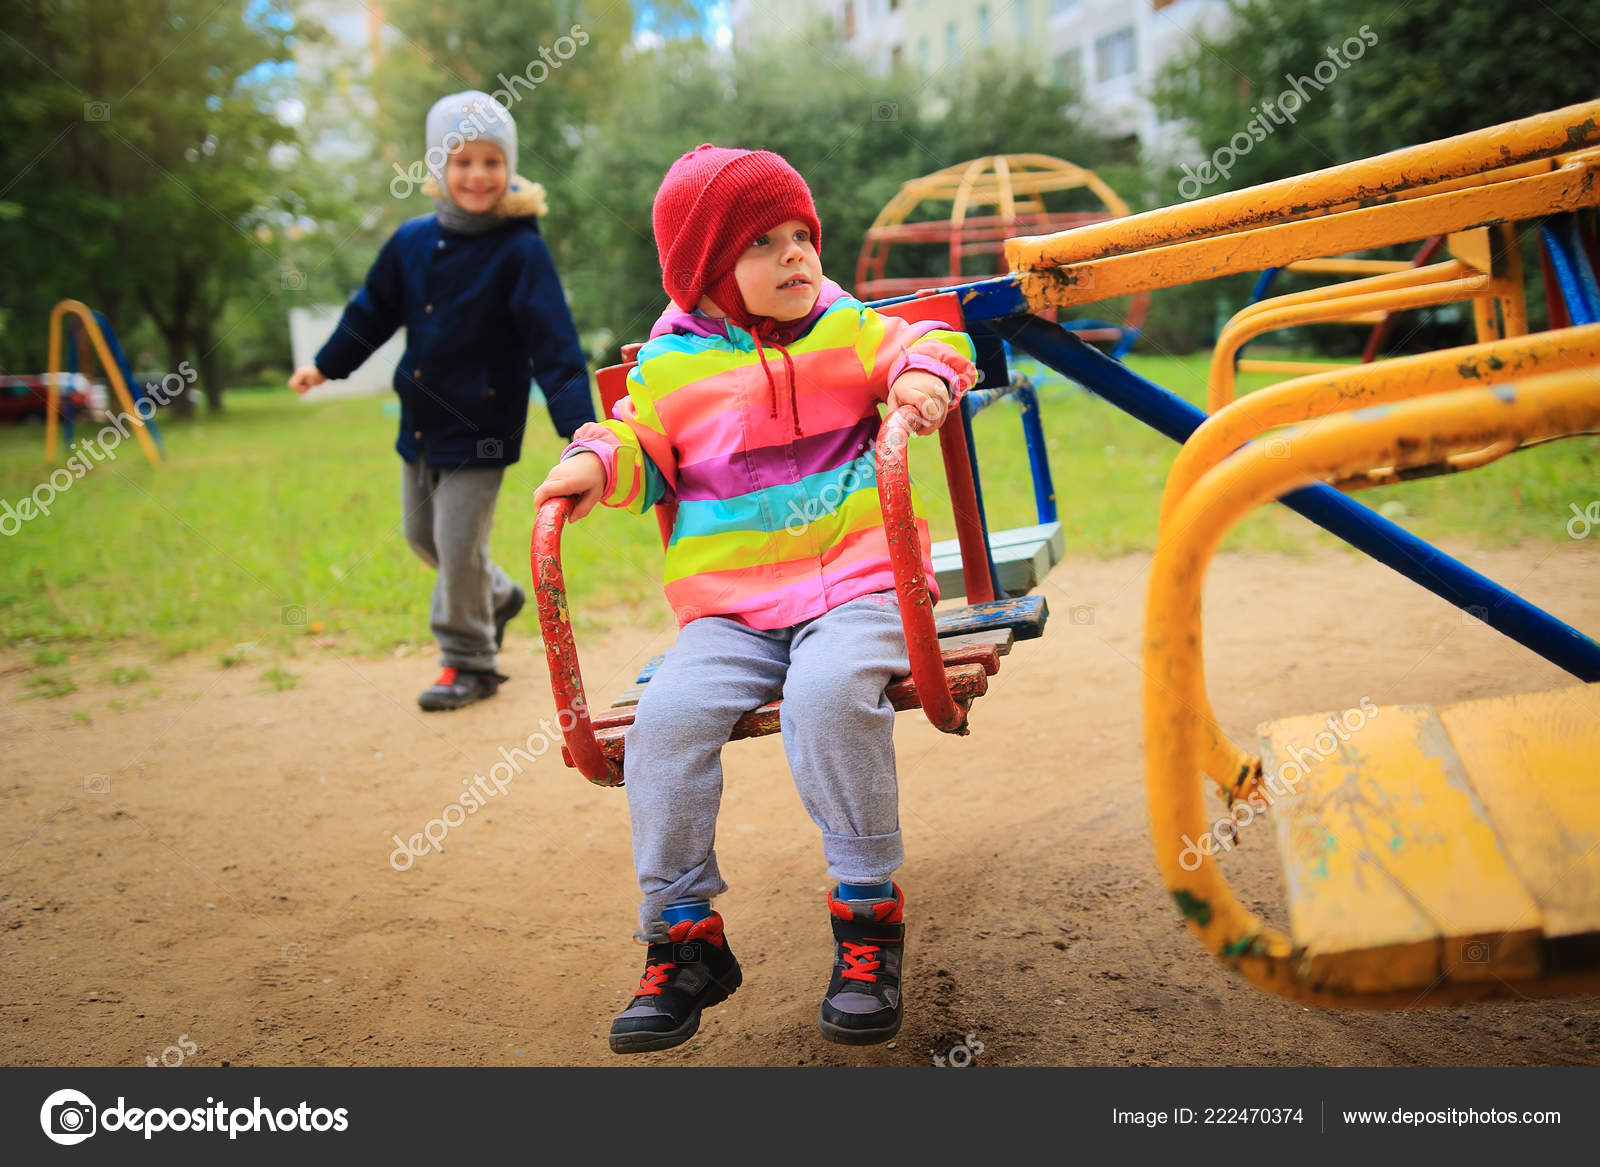 3580f1527 Children ride on the carousel in the playground. Playing children. Little  cute babes ride on a swing — Photo by DzmitRock87@gmail.com  ...